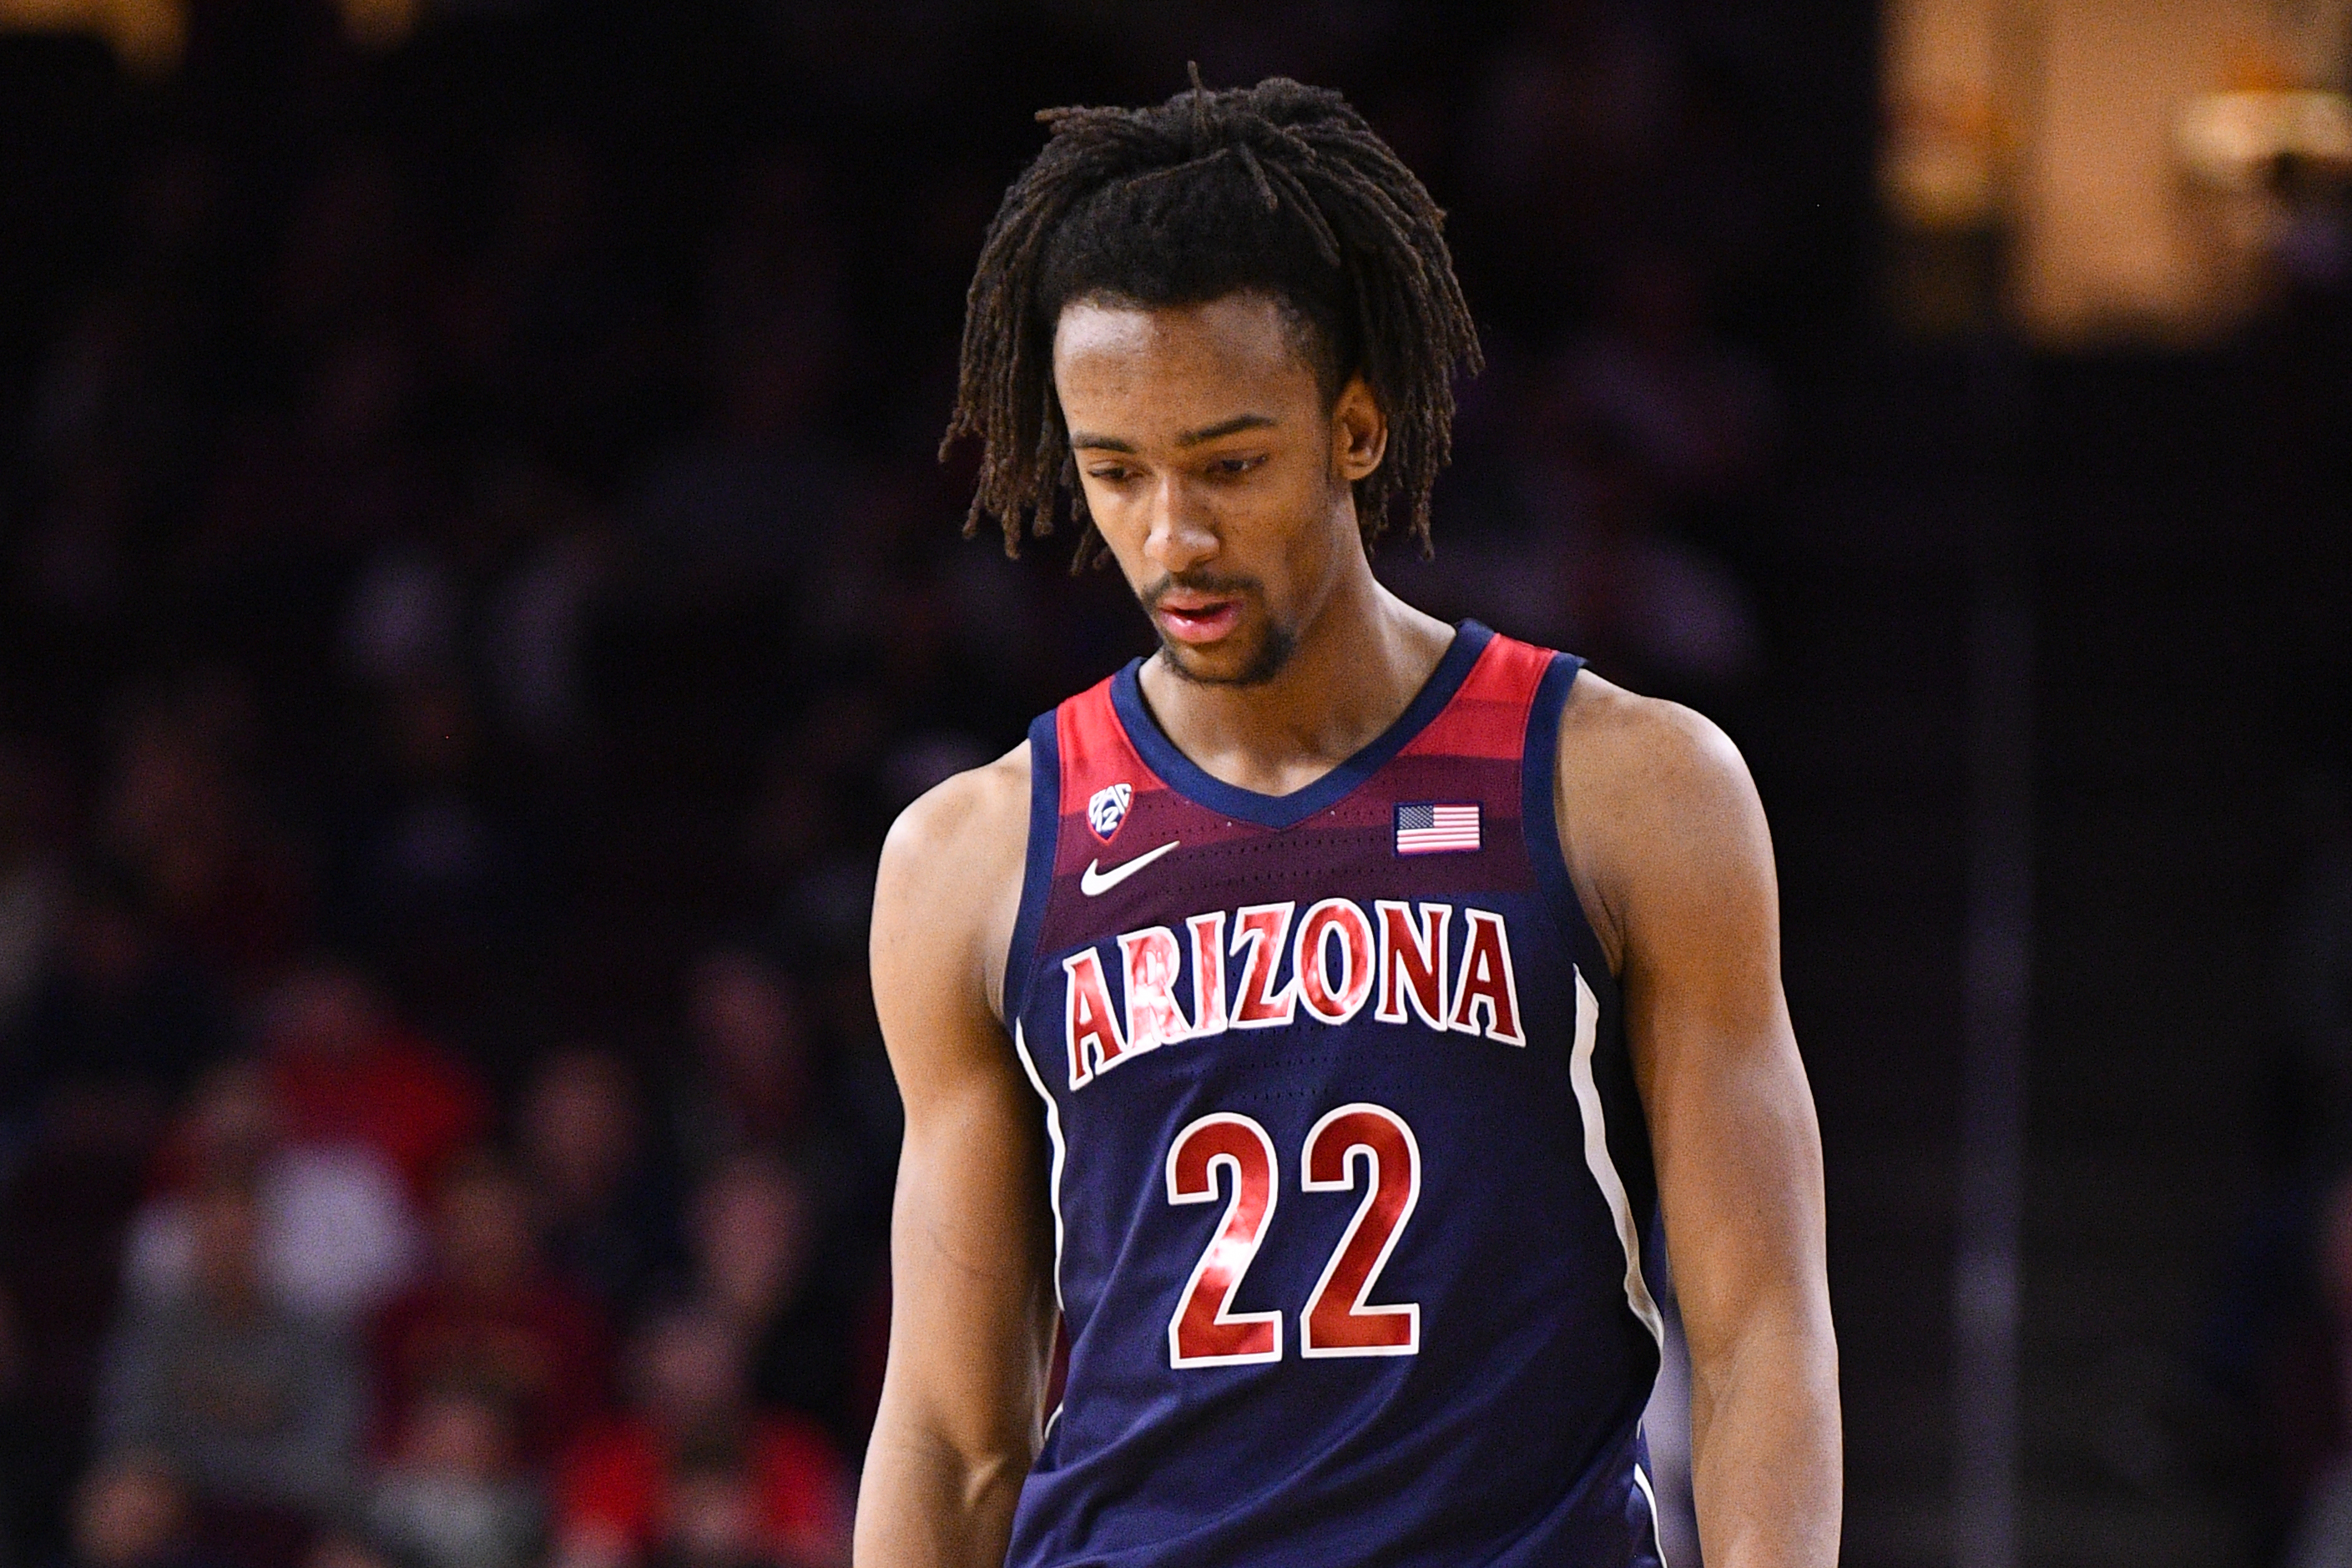 Arizona Wildcats forward Zeke Nnaji